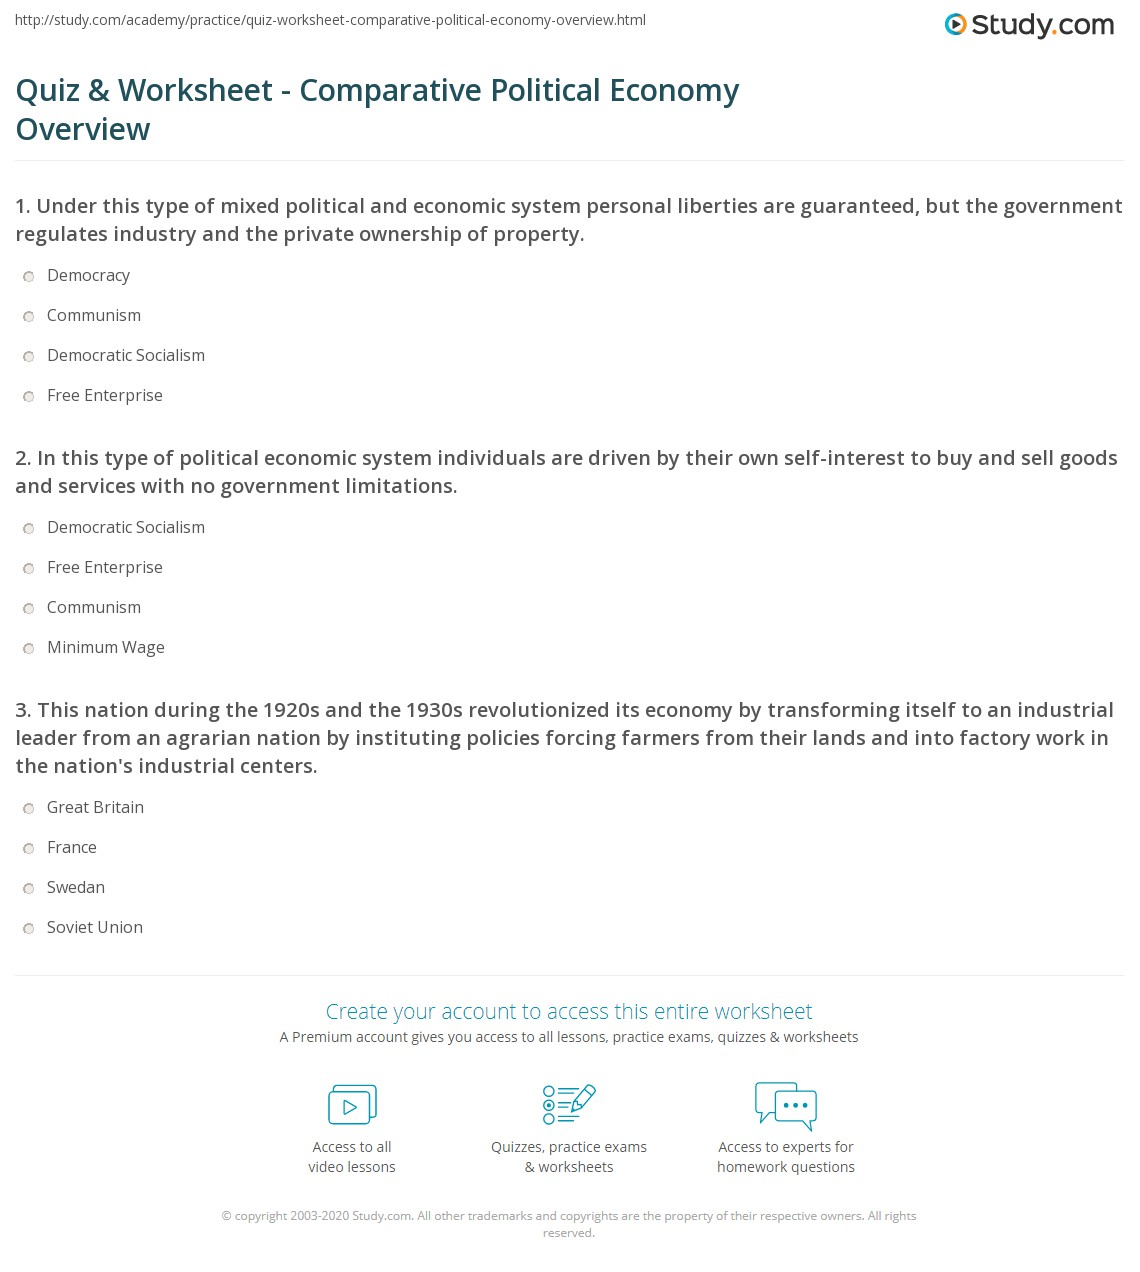 Quiz Worksheet Comparative Political Economy Overview